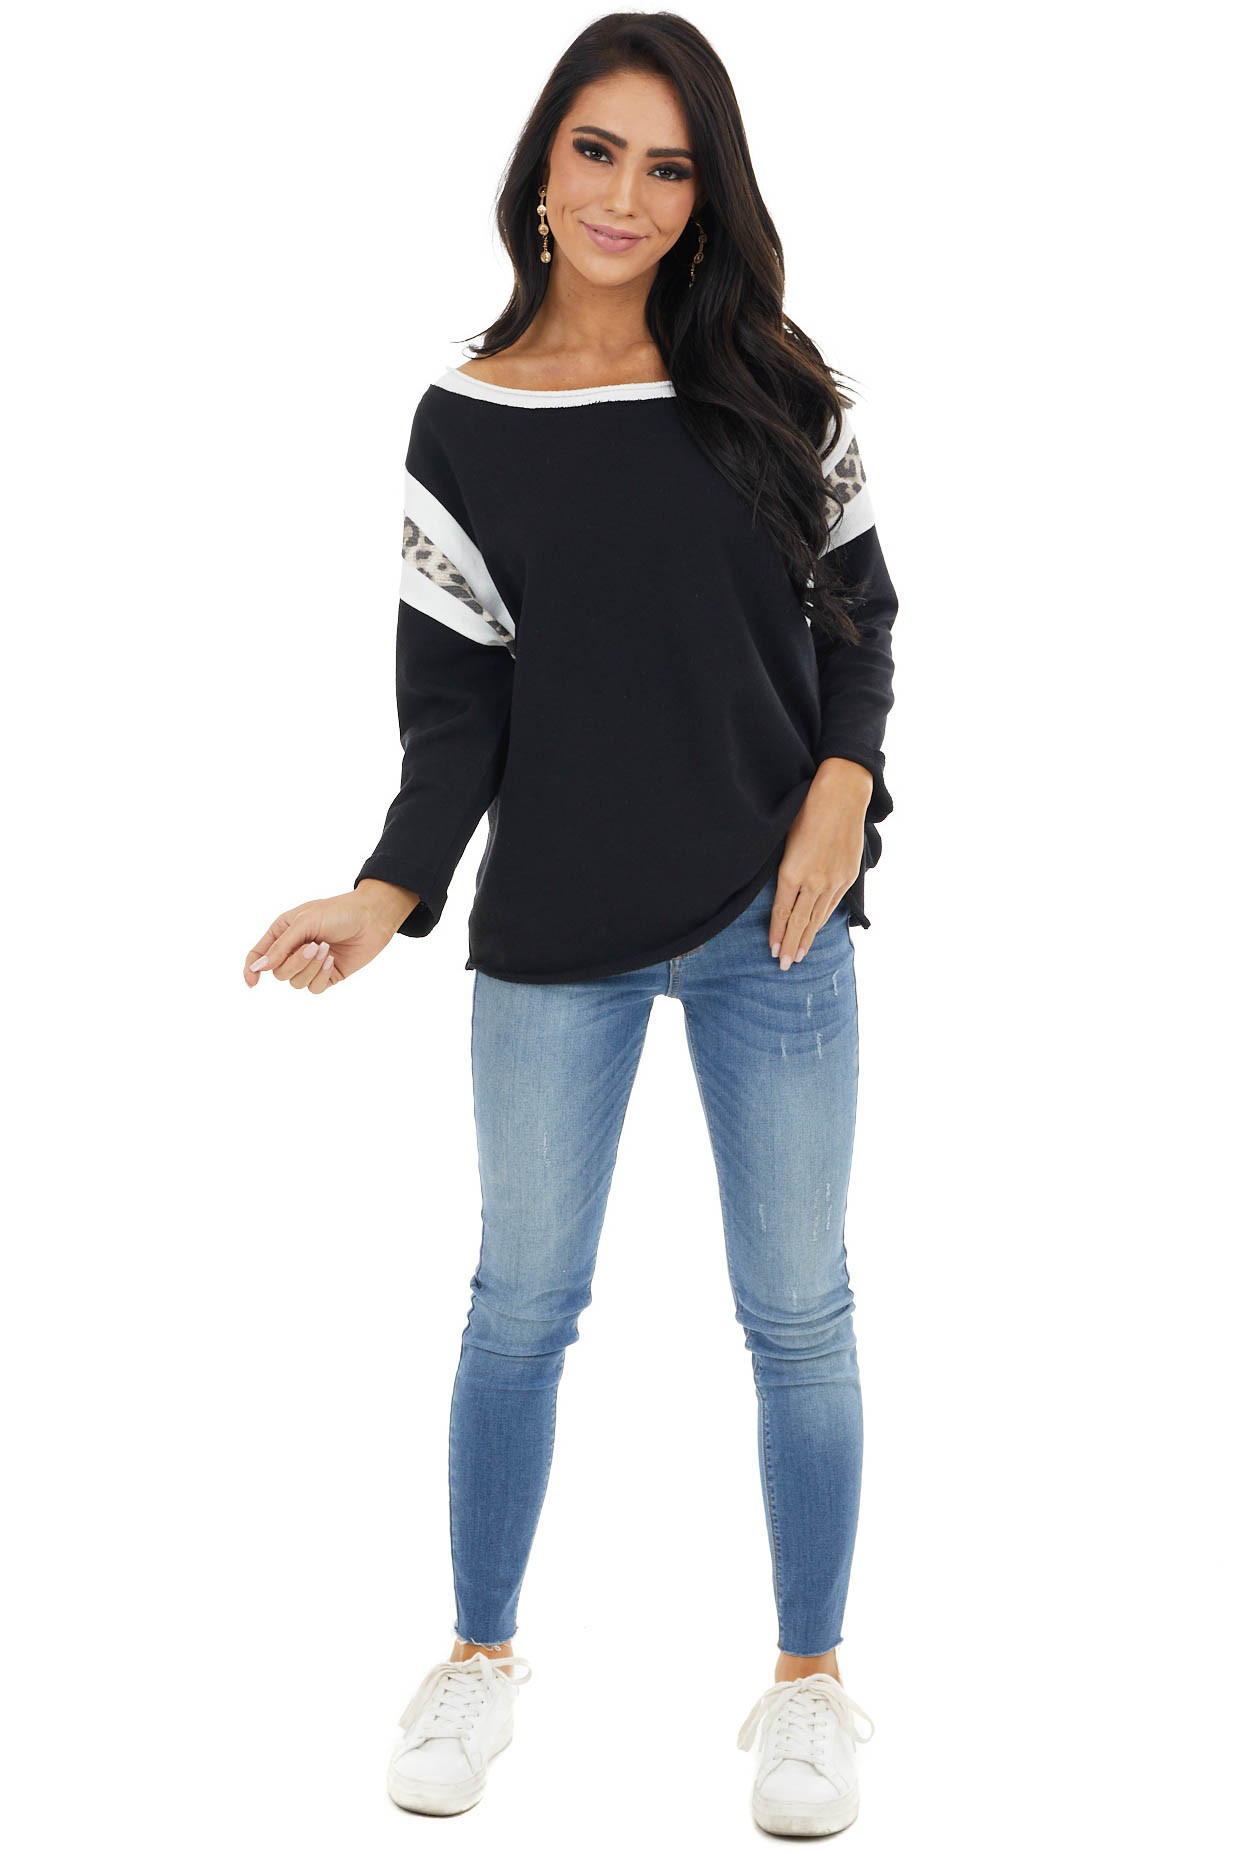 Black 3/4 Sleeve Knit Top with Leopard Print Details